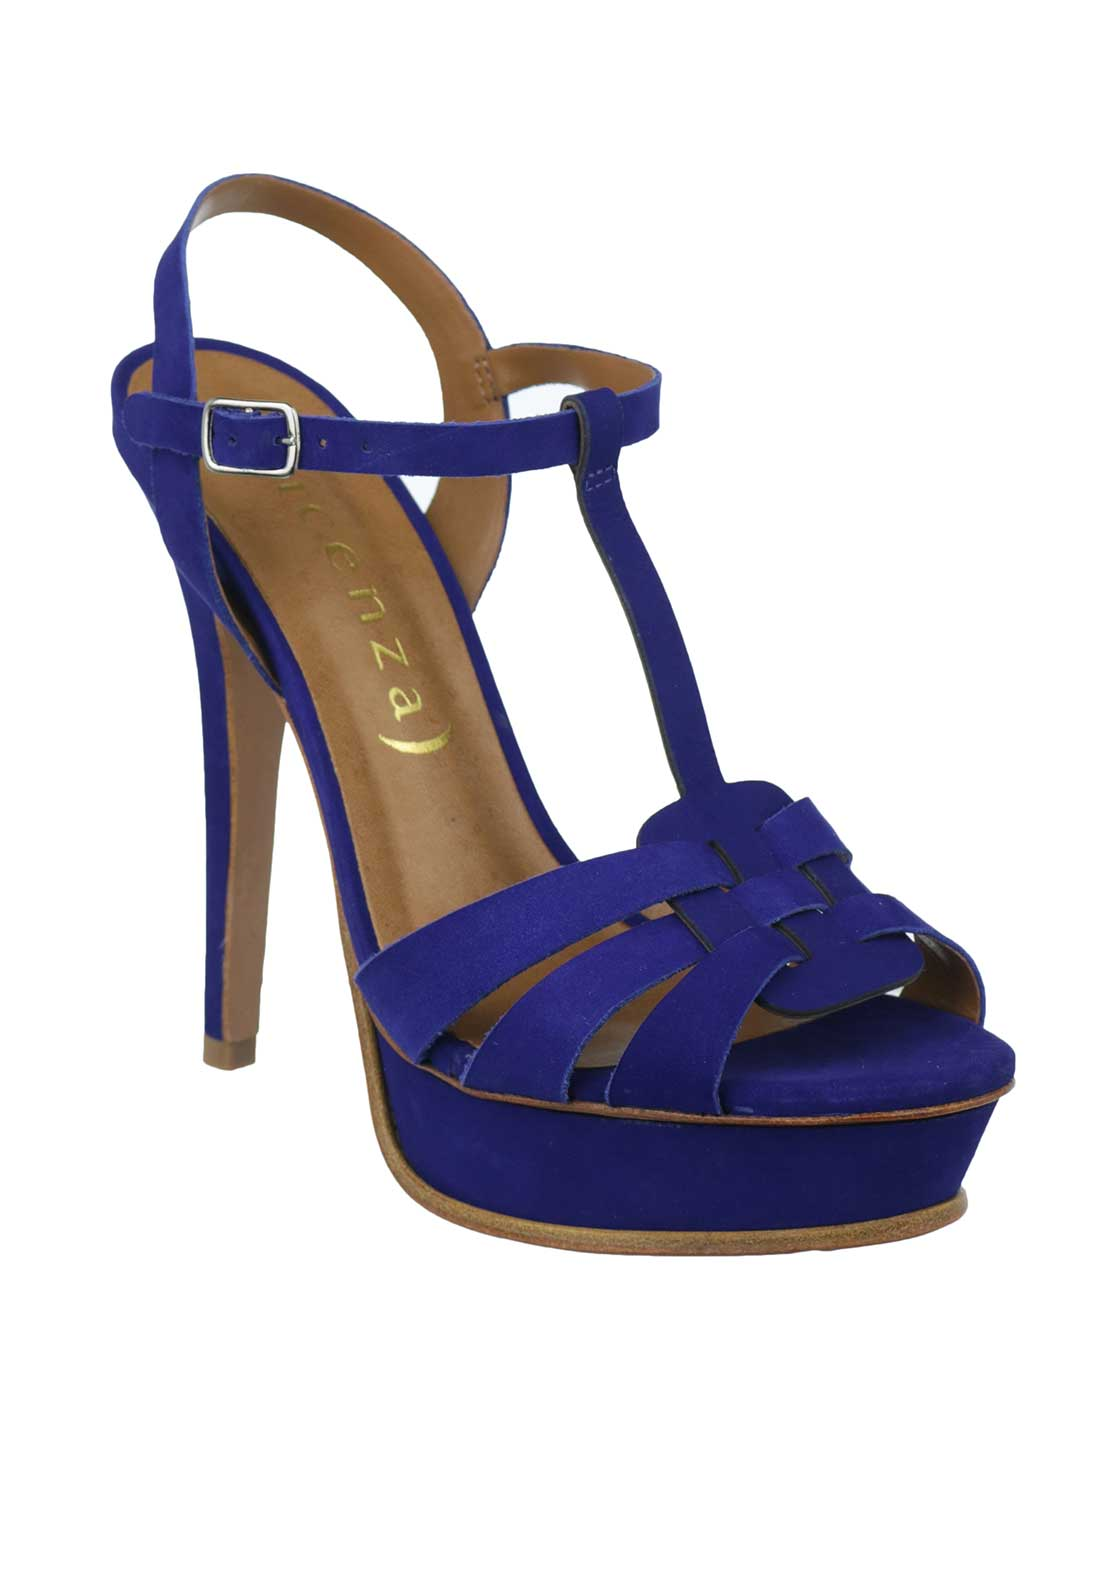 Unique Footwear Suede T-Bar Platform Heeled Sandals, Cobalt Blue